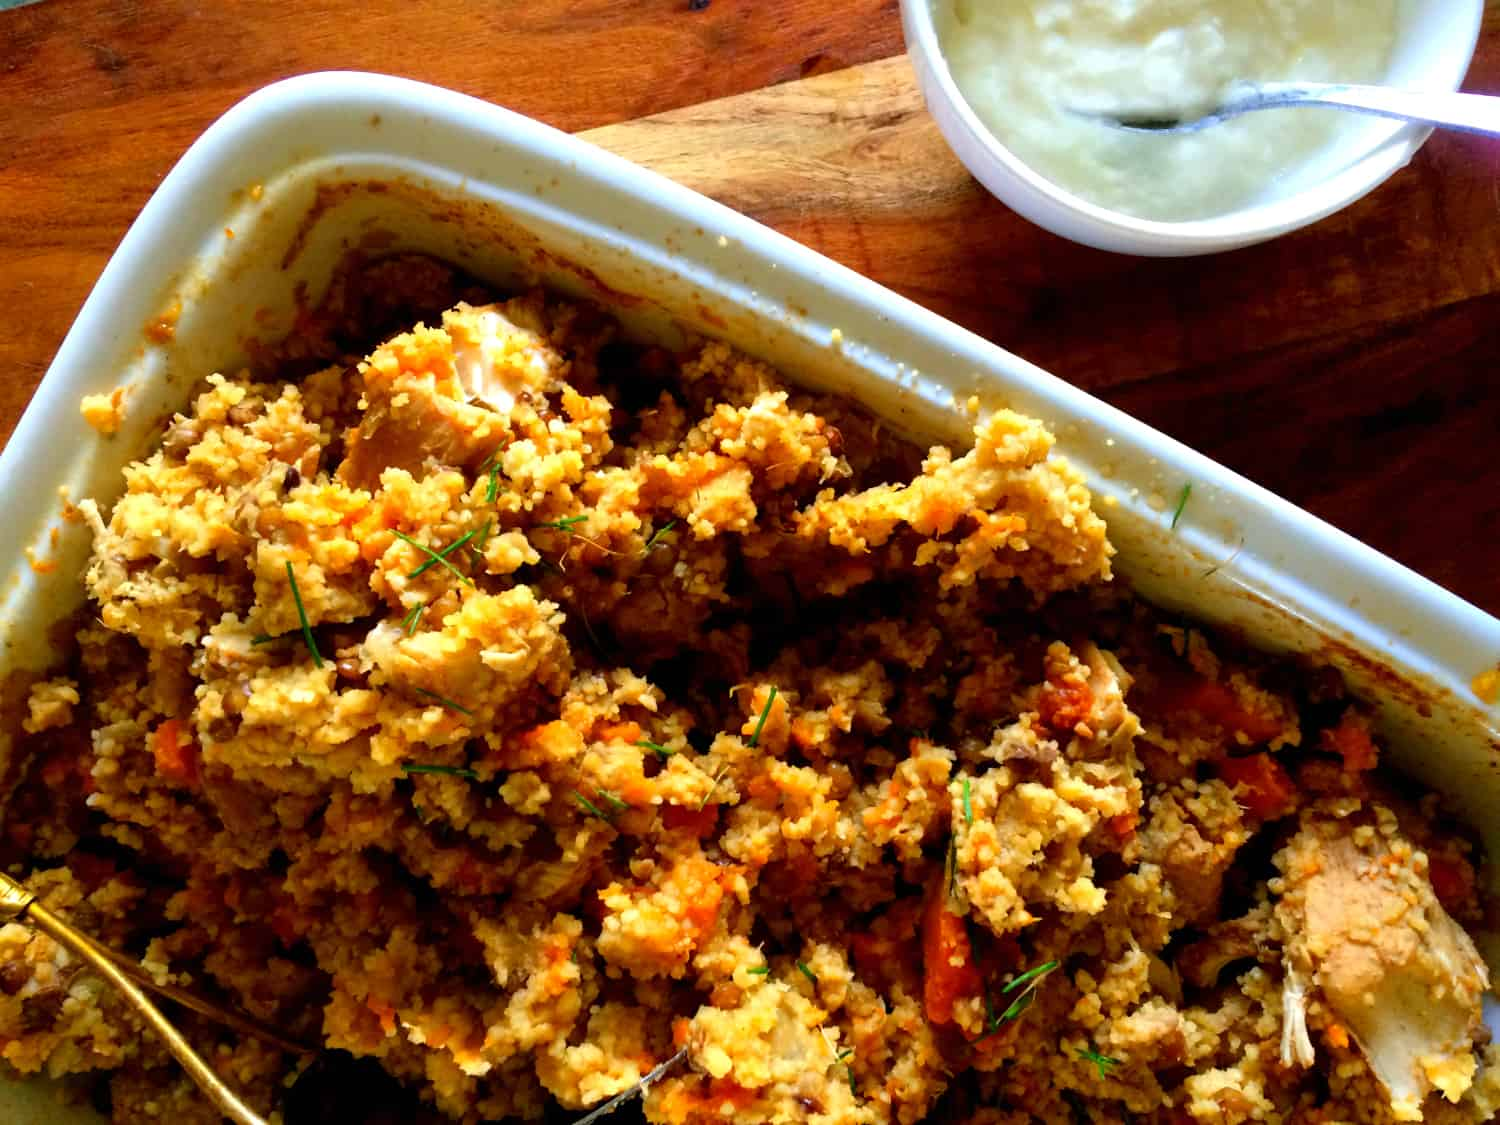 Oh my goodness! this dish is amazing. My children loved it and it was even better the next day as leftovers!